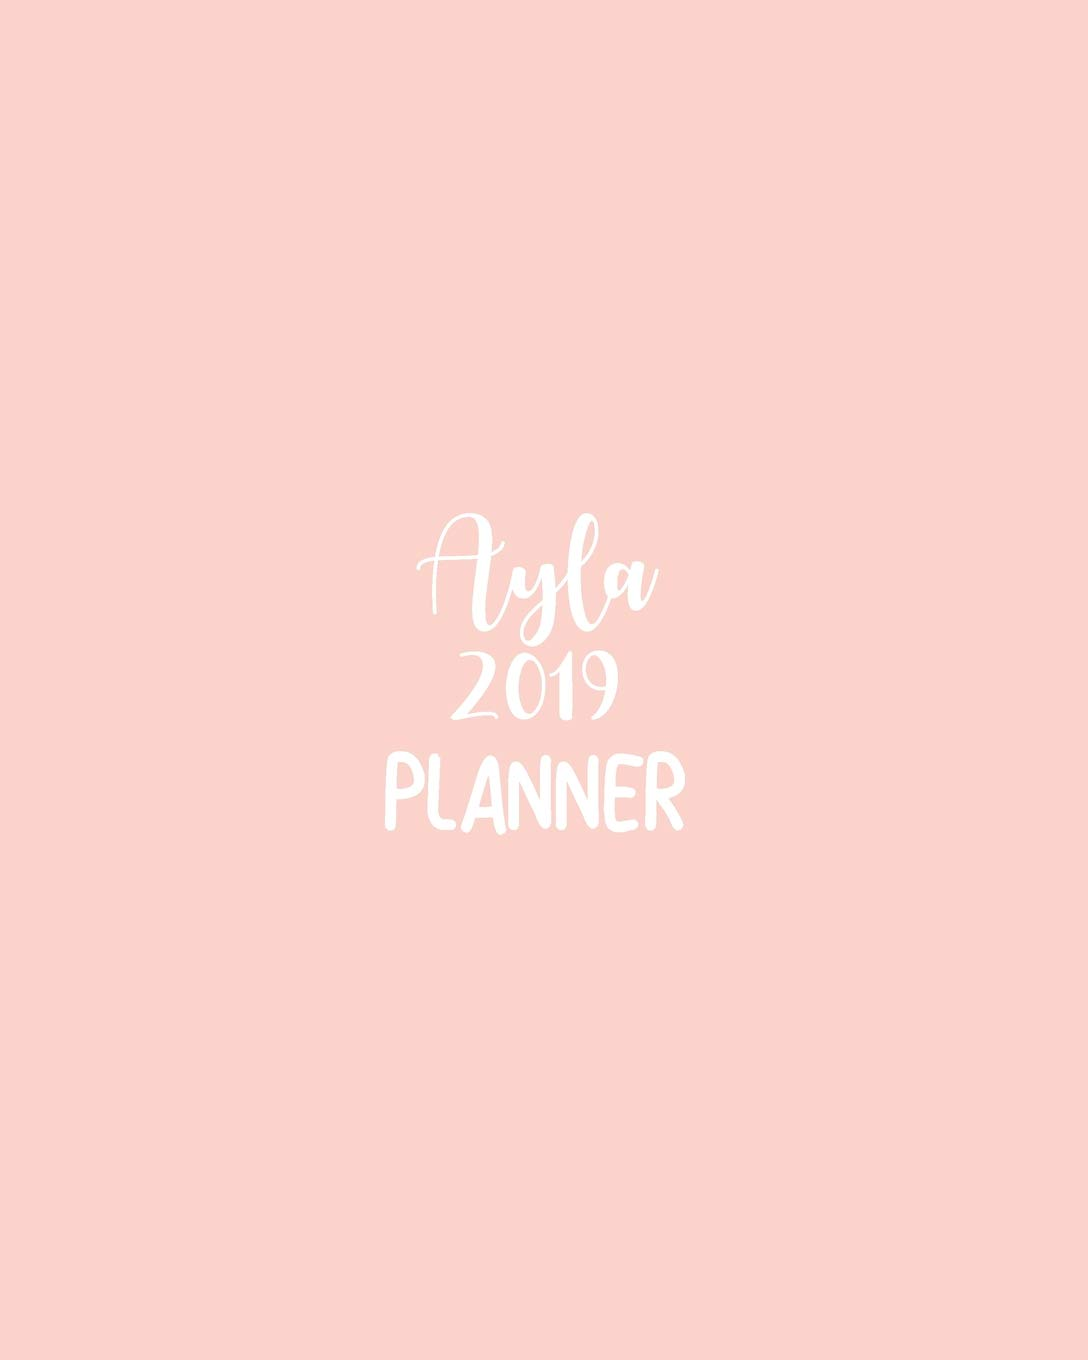 Ayla 2019 planner calendar with daily task checklist organizer journal notebook and initial name on plain color cover jan through dec